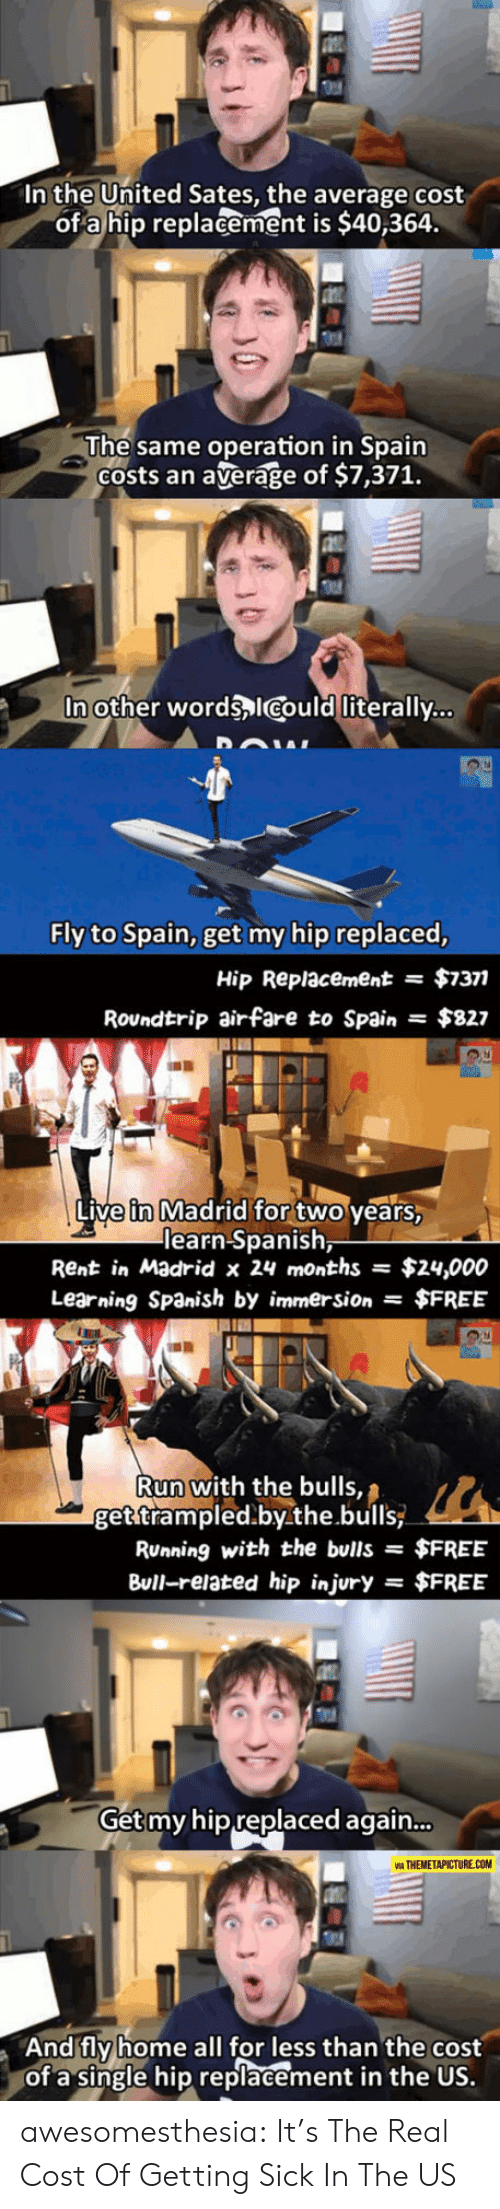 Injury: In the United Sates, the average cost  of a hip replacement is $40,364.  The same operation in Spain  Costs an  average of $7,371.  In other words ICould literally...  Fly to Spain, get my hip replaced,  $7377  Hip Replacement  =  Roundtrip airfare to Spain  $827  Live in Madrid for two years,  learn Spanish,  Rent in Madrid x 24 months  $24,000  Learning Spanish by immersion $FREE  Run with the bulls,  get trampled.by.the.bulls  RUnning with the bulls =  $FREE  Bull-related hip injury  $FREE  =  Get my hip replaced again...  VIA THEMETAPICTURE.COM  And fly home all for less than the cost  of a single hip replacement in the US. awesomesthesia:  It's The Real Cost Of Getting Sick In The US